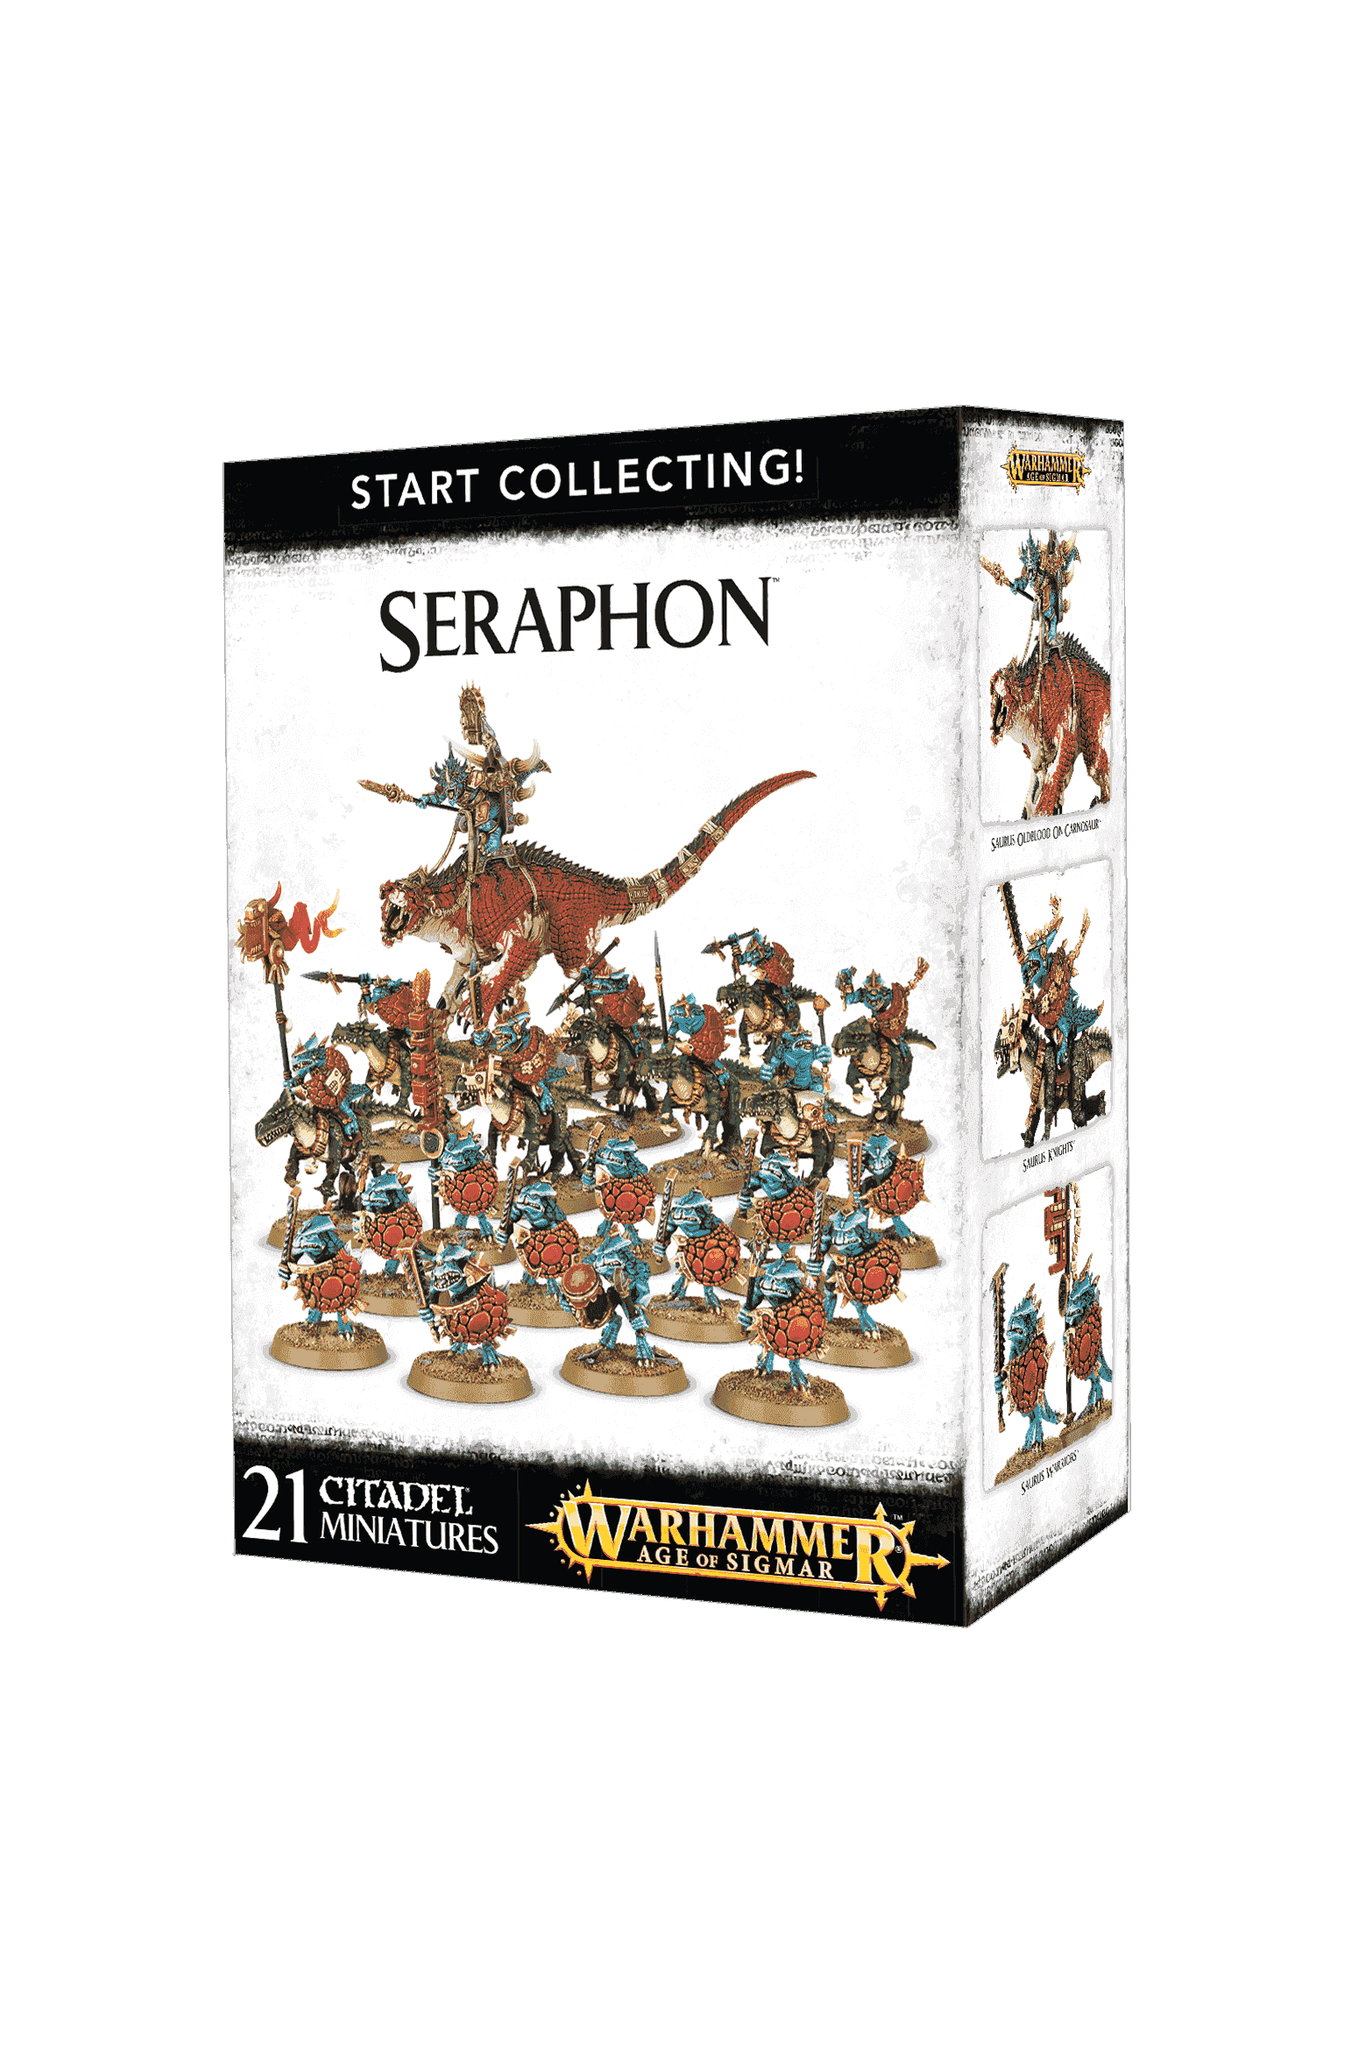 age-of-sigmar-start-collecting!-seraphon-games-workshop-5011921066551-thegamersden.com